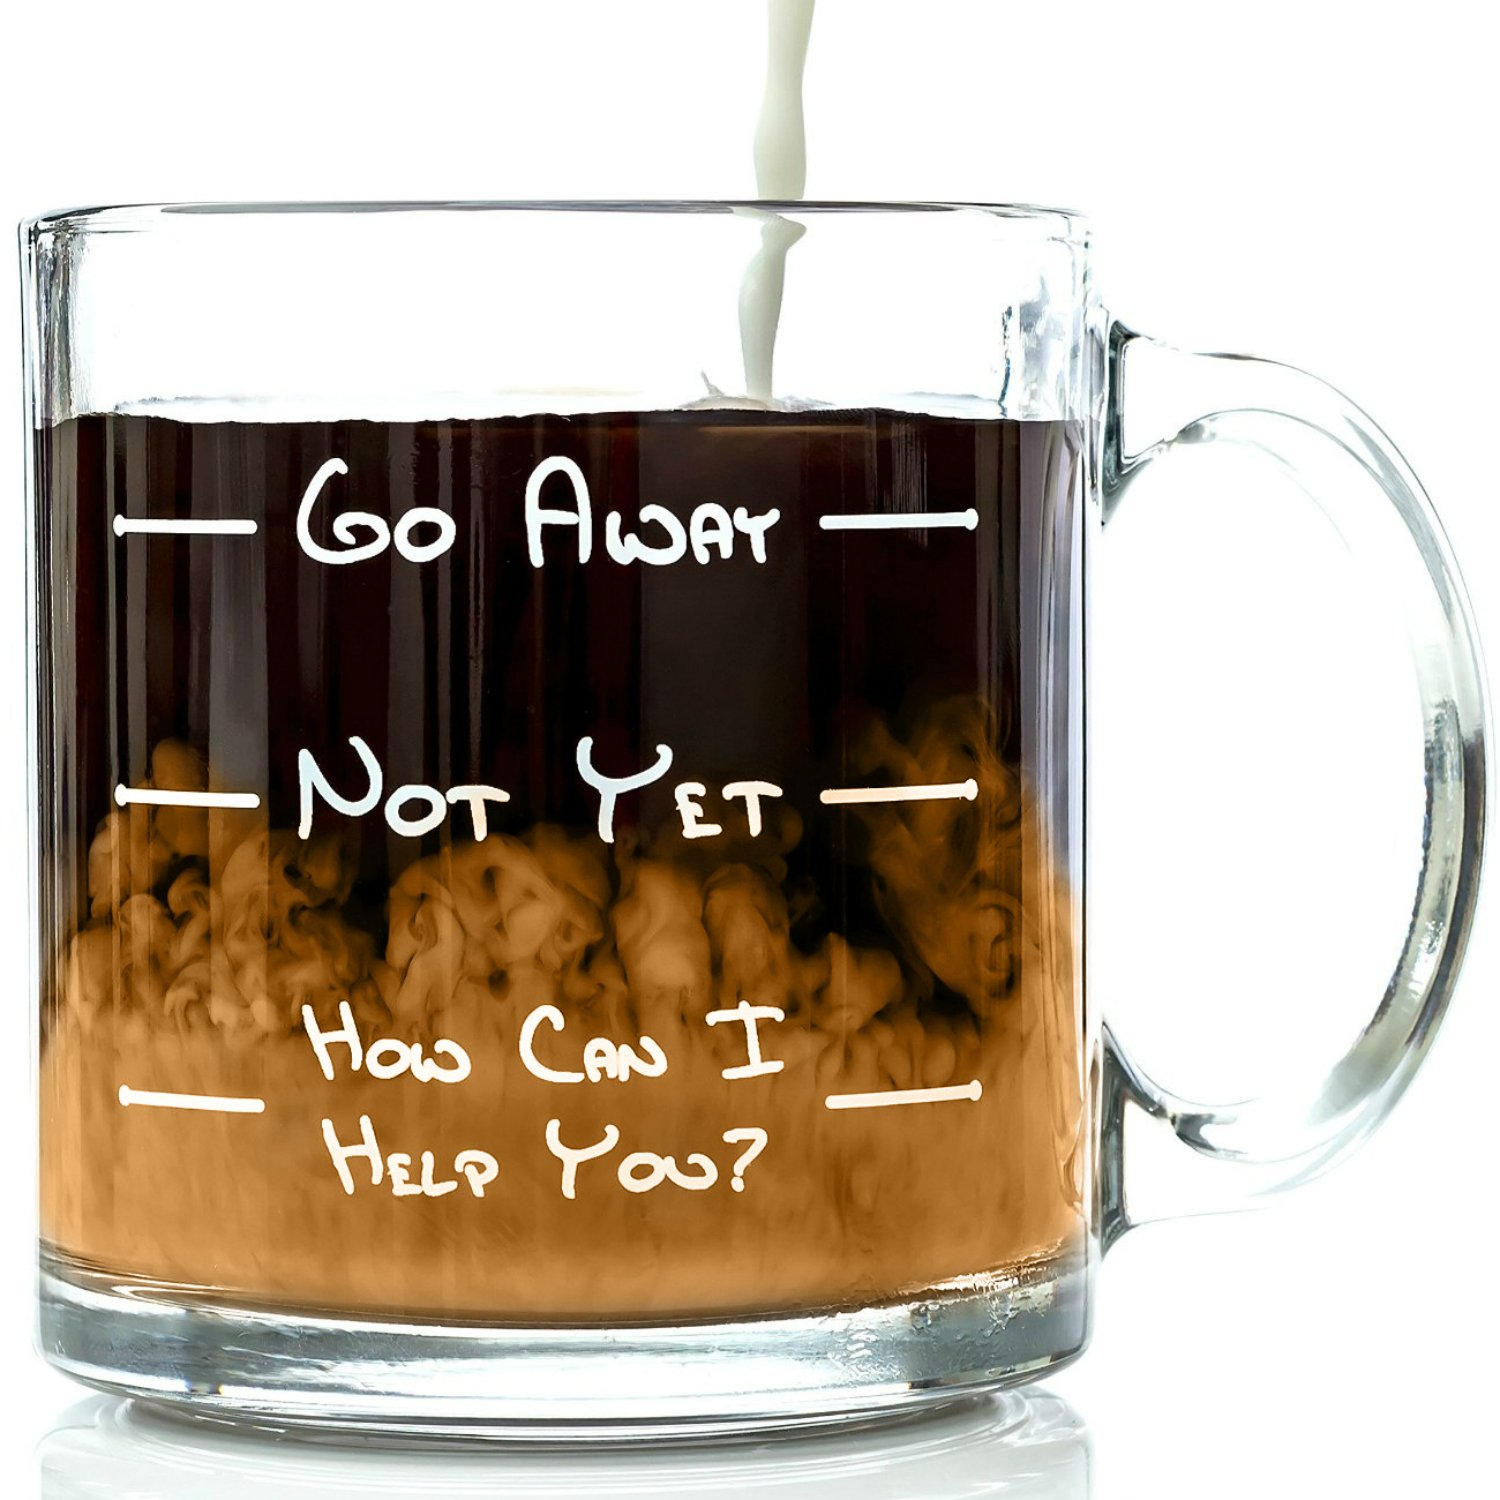 Got Me Tipsy Go Away Funny Coffee Mug - Birthday Gift Idea for Him or Her, Mother's Day Gift for Mom and Father's Day Gift for Dad - Easter Basket Stuffers - 13-Ounce, Glass